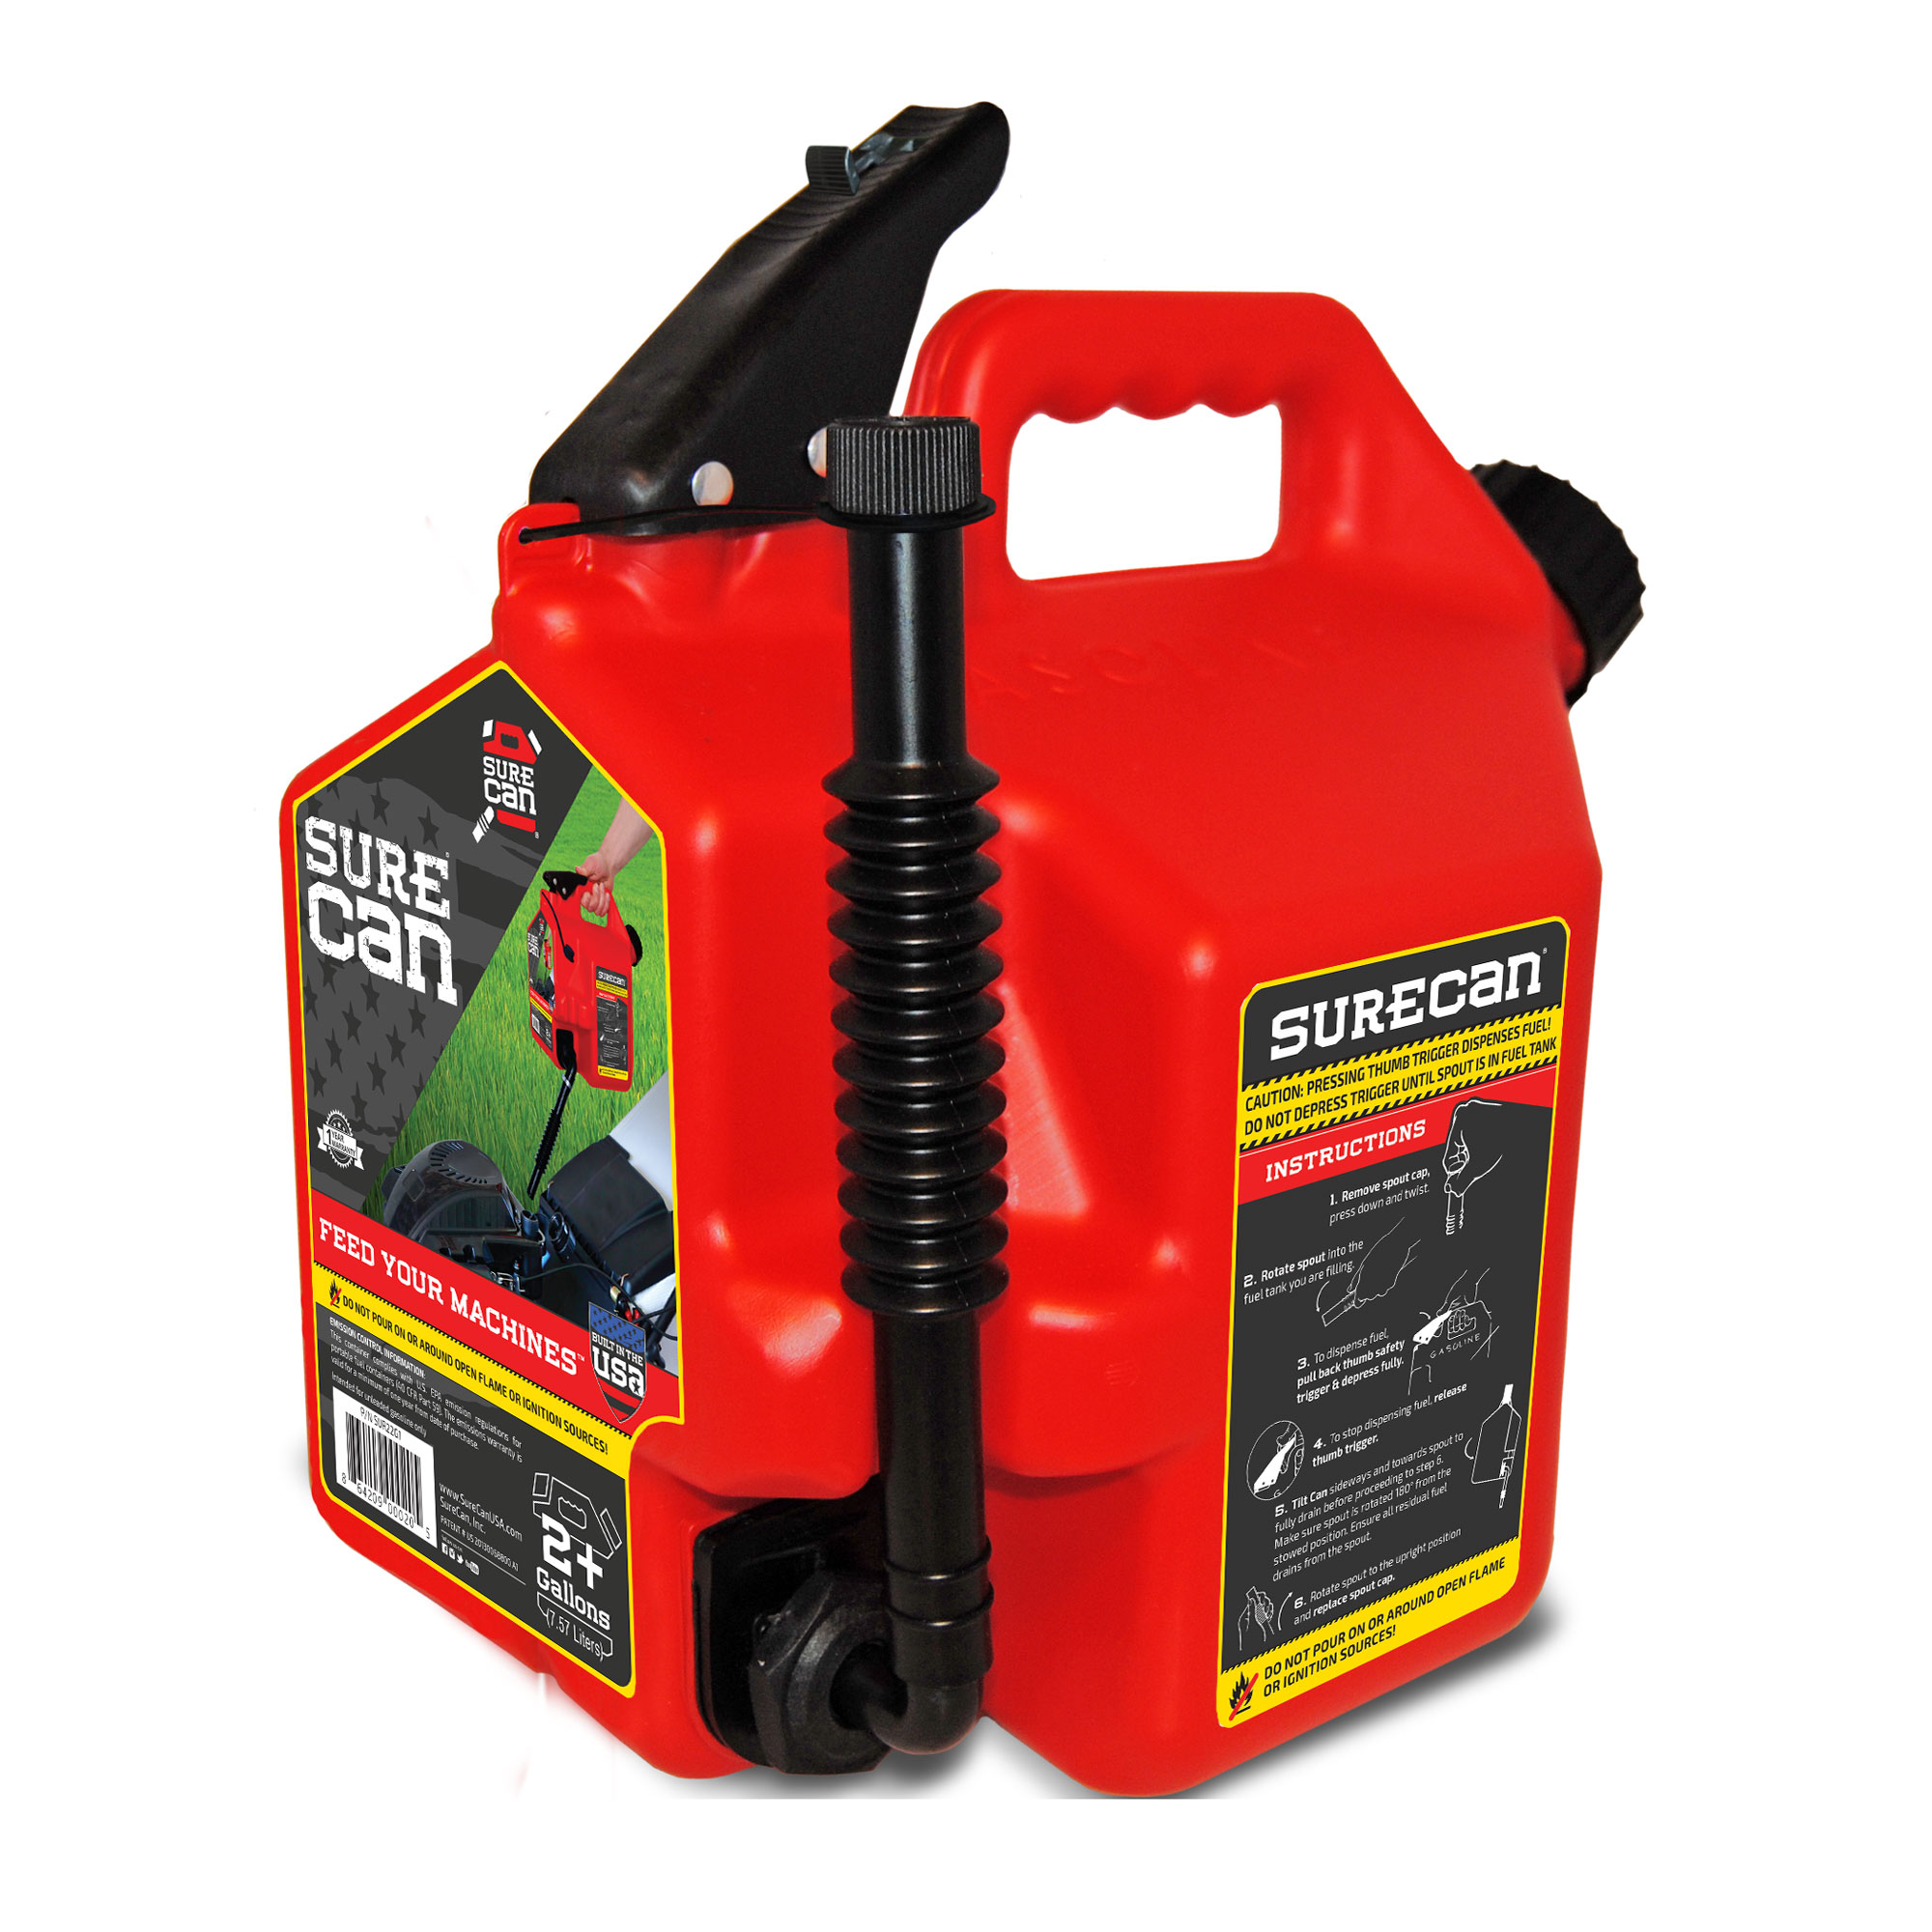 SureCan Self Venting Easy Pour Nozzle 2.2 Gallon Flow Control Gas Container, Red